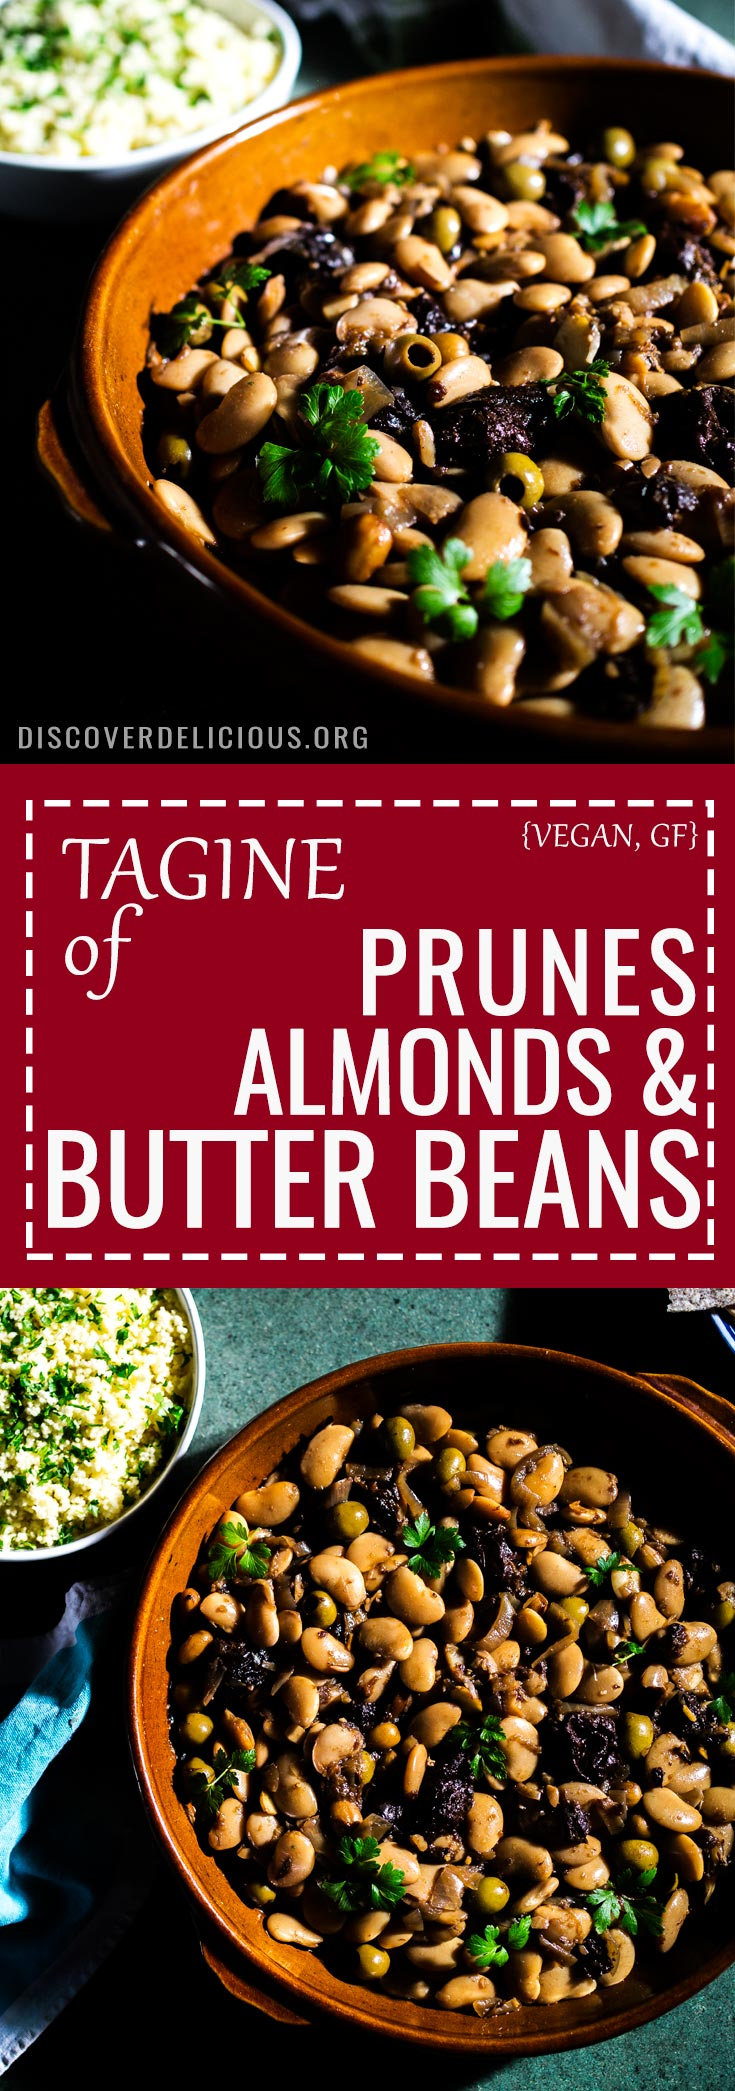 This Tagine of Butter Beans, Almonds and Prunes is so delicious - sweet & sour, filling, healthy and 100% vegan! #moroccan #couscous #gluten #free #recipe #recipes #middle #eastern #vegetarian